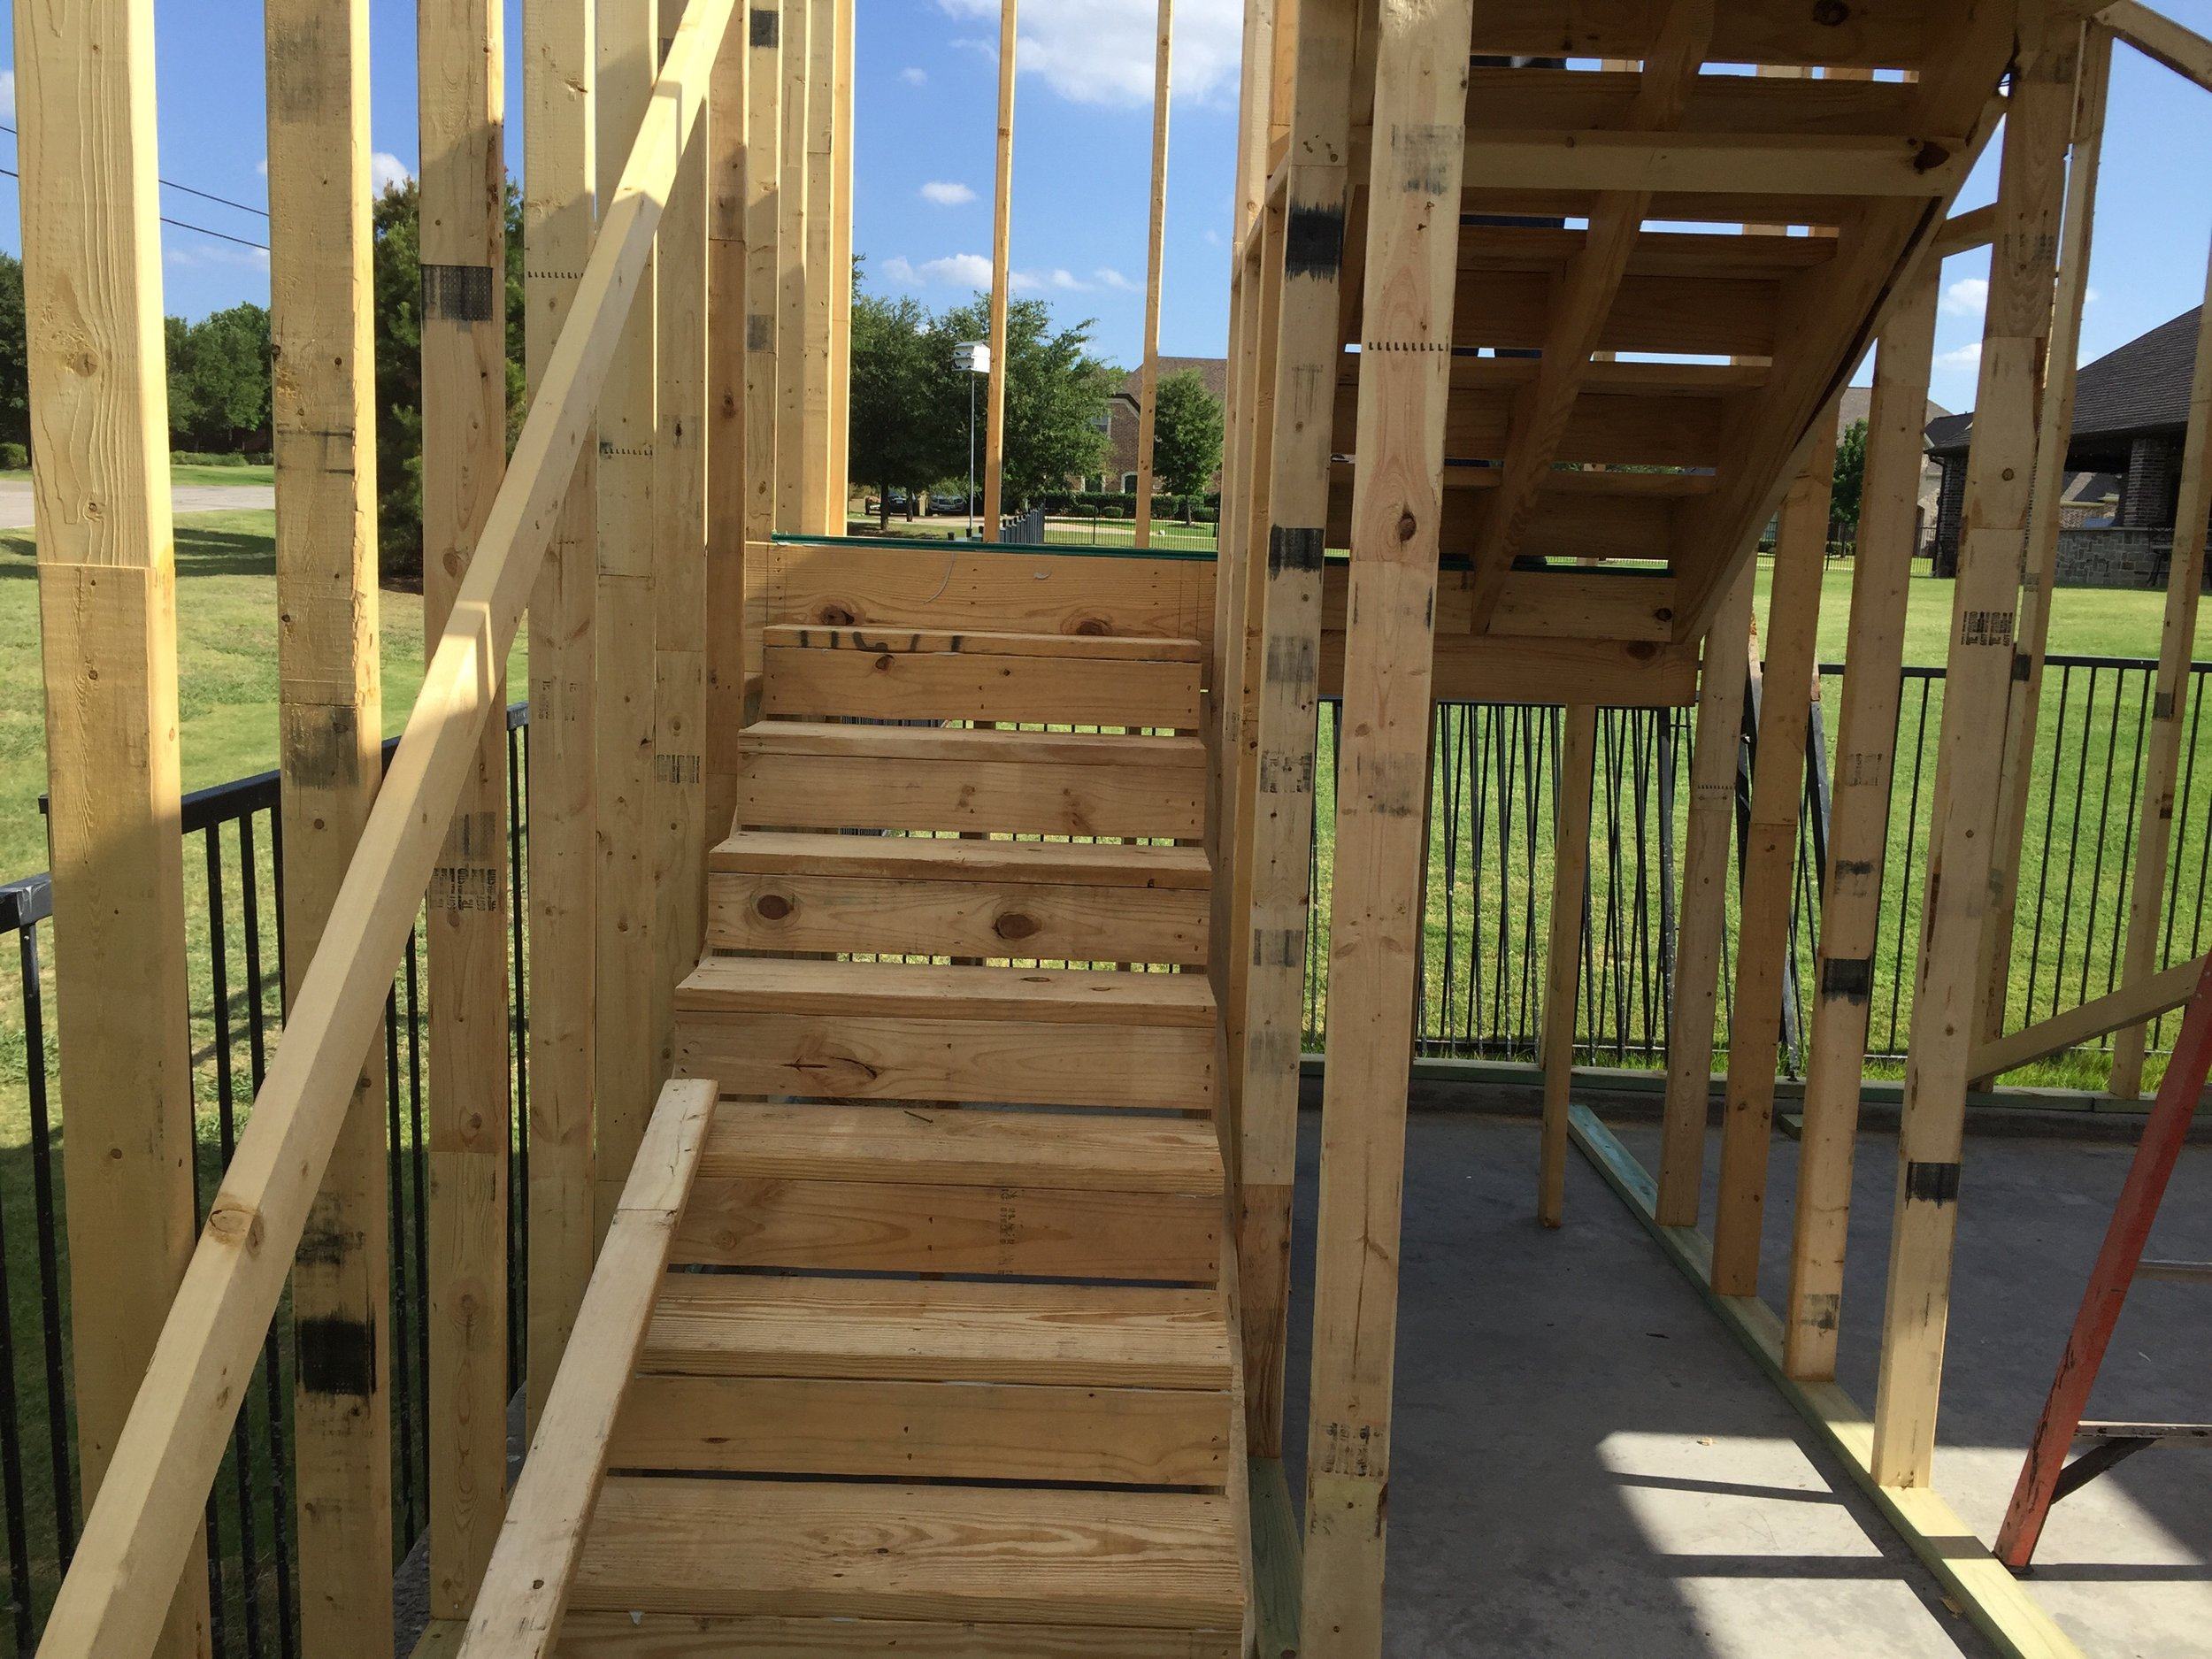 Prosper Detached Garage Framing Stairs